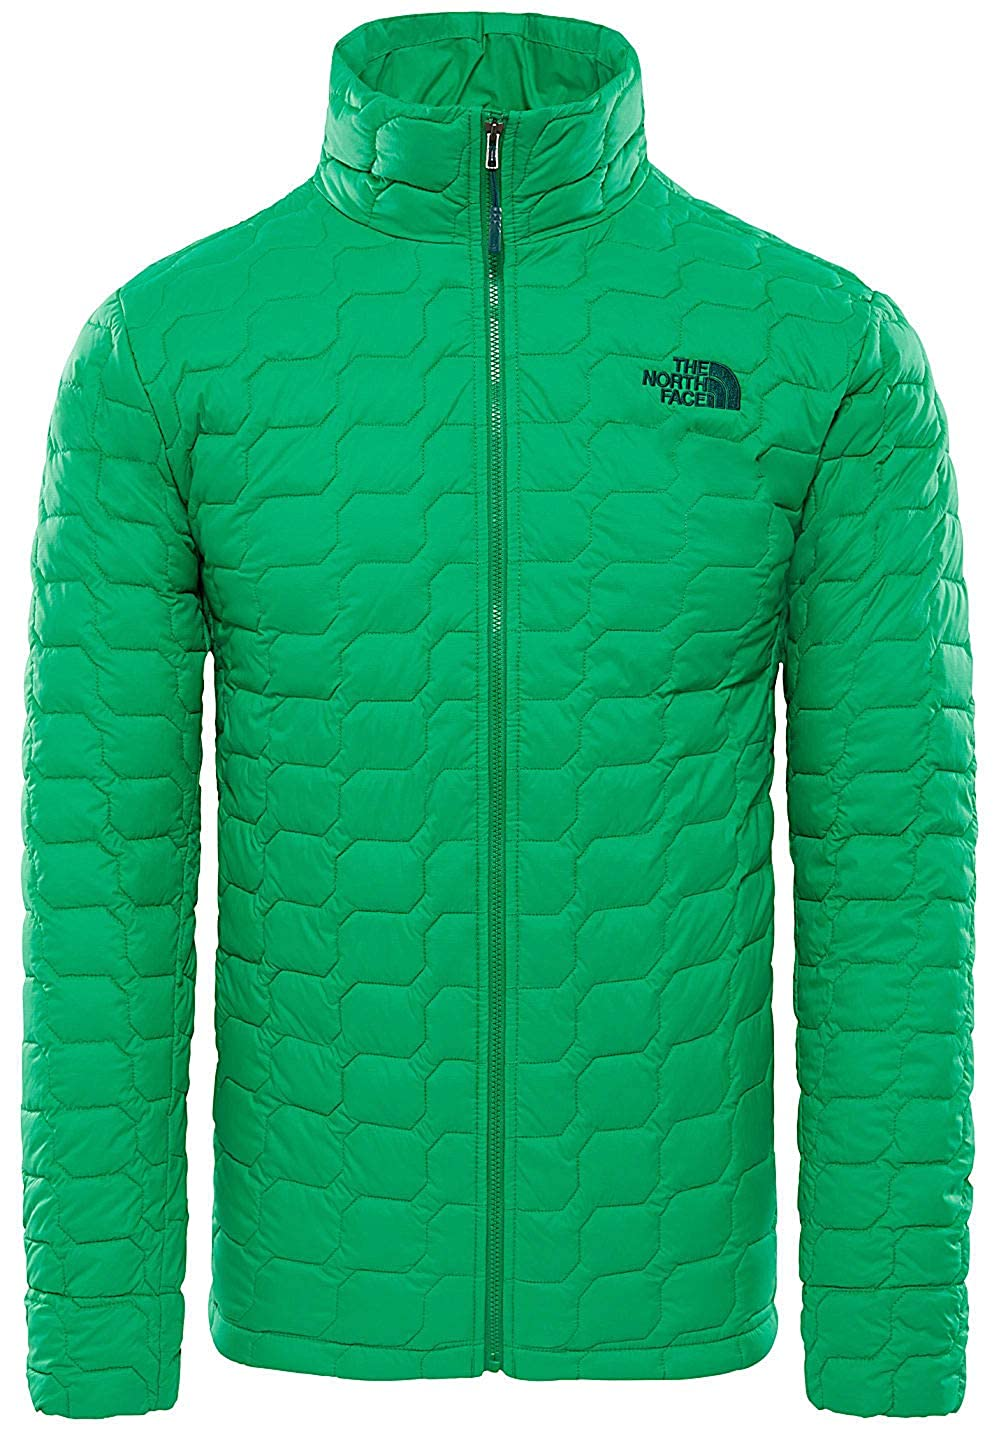 Primary Green Matte L The North Face Thermoball Men's Outdoor Jacket